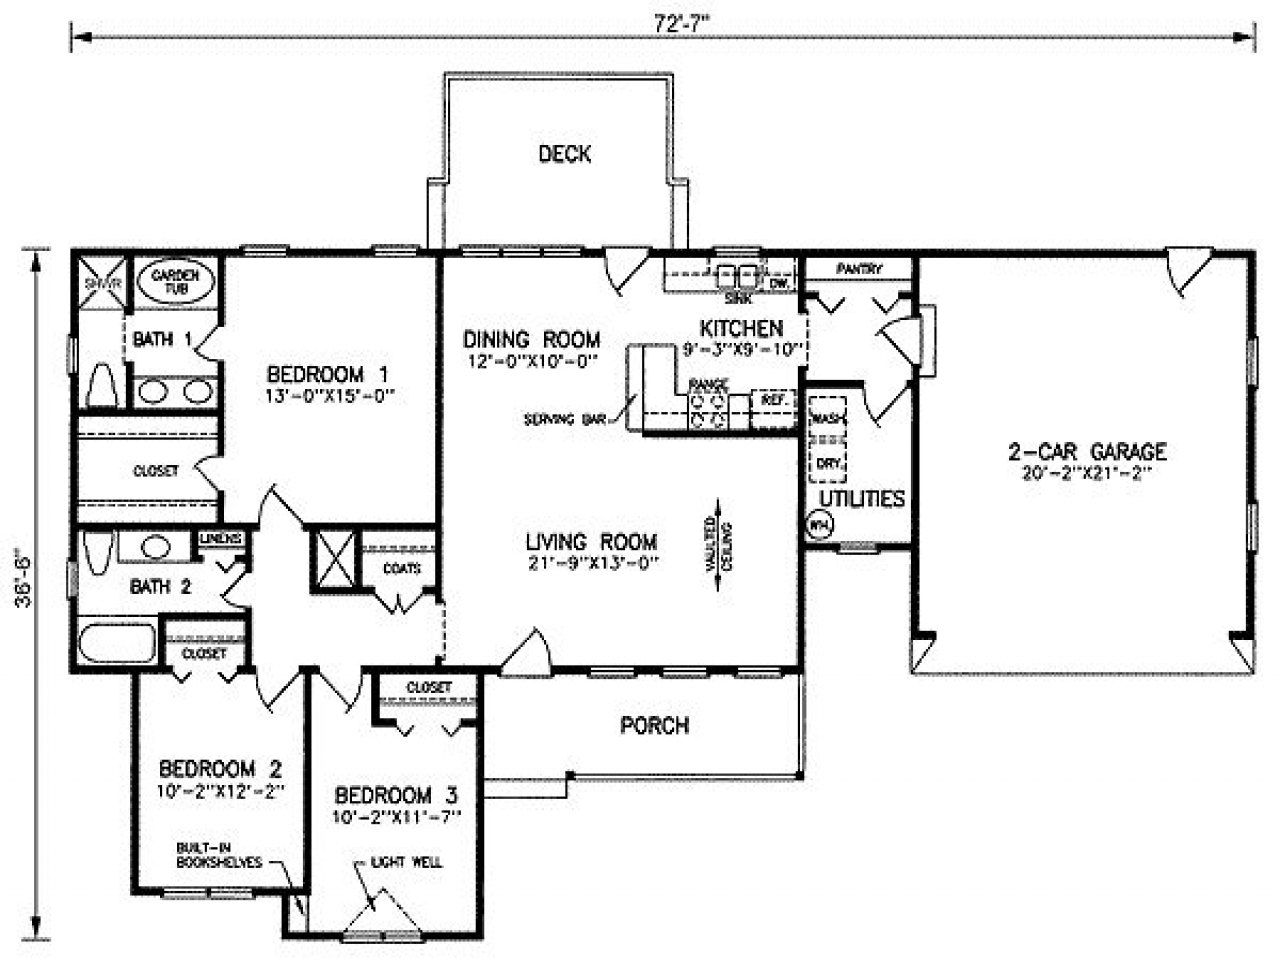 Open floor plan house plans 1500 sq ft 1500 square feet for 1500 square foot floor plans